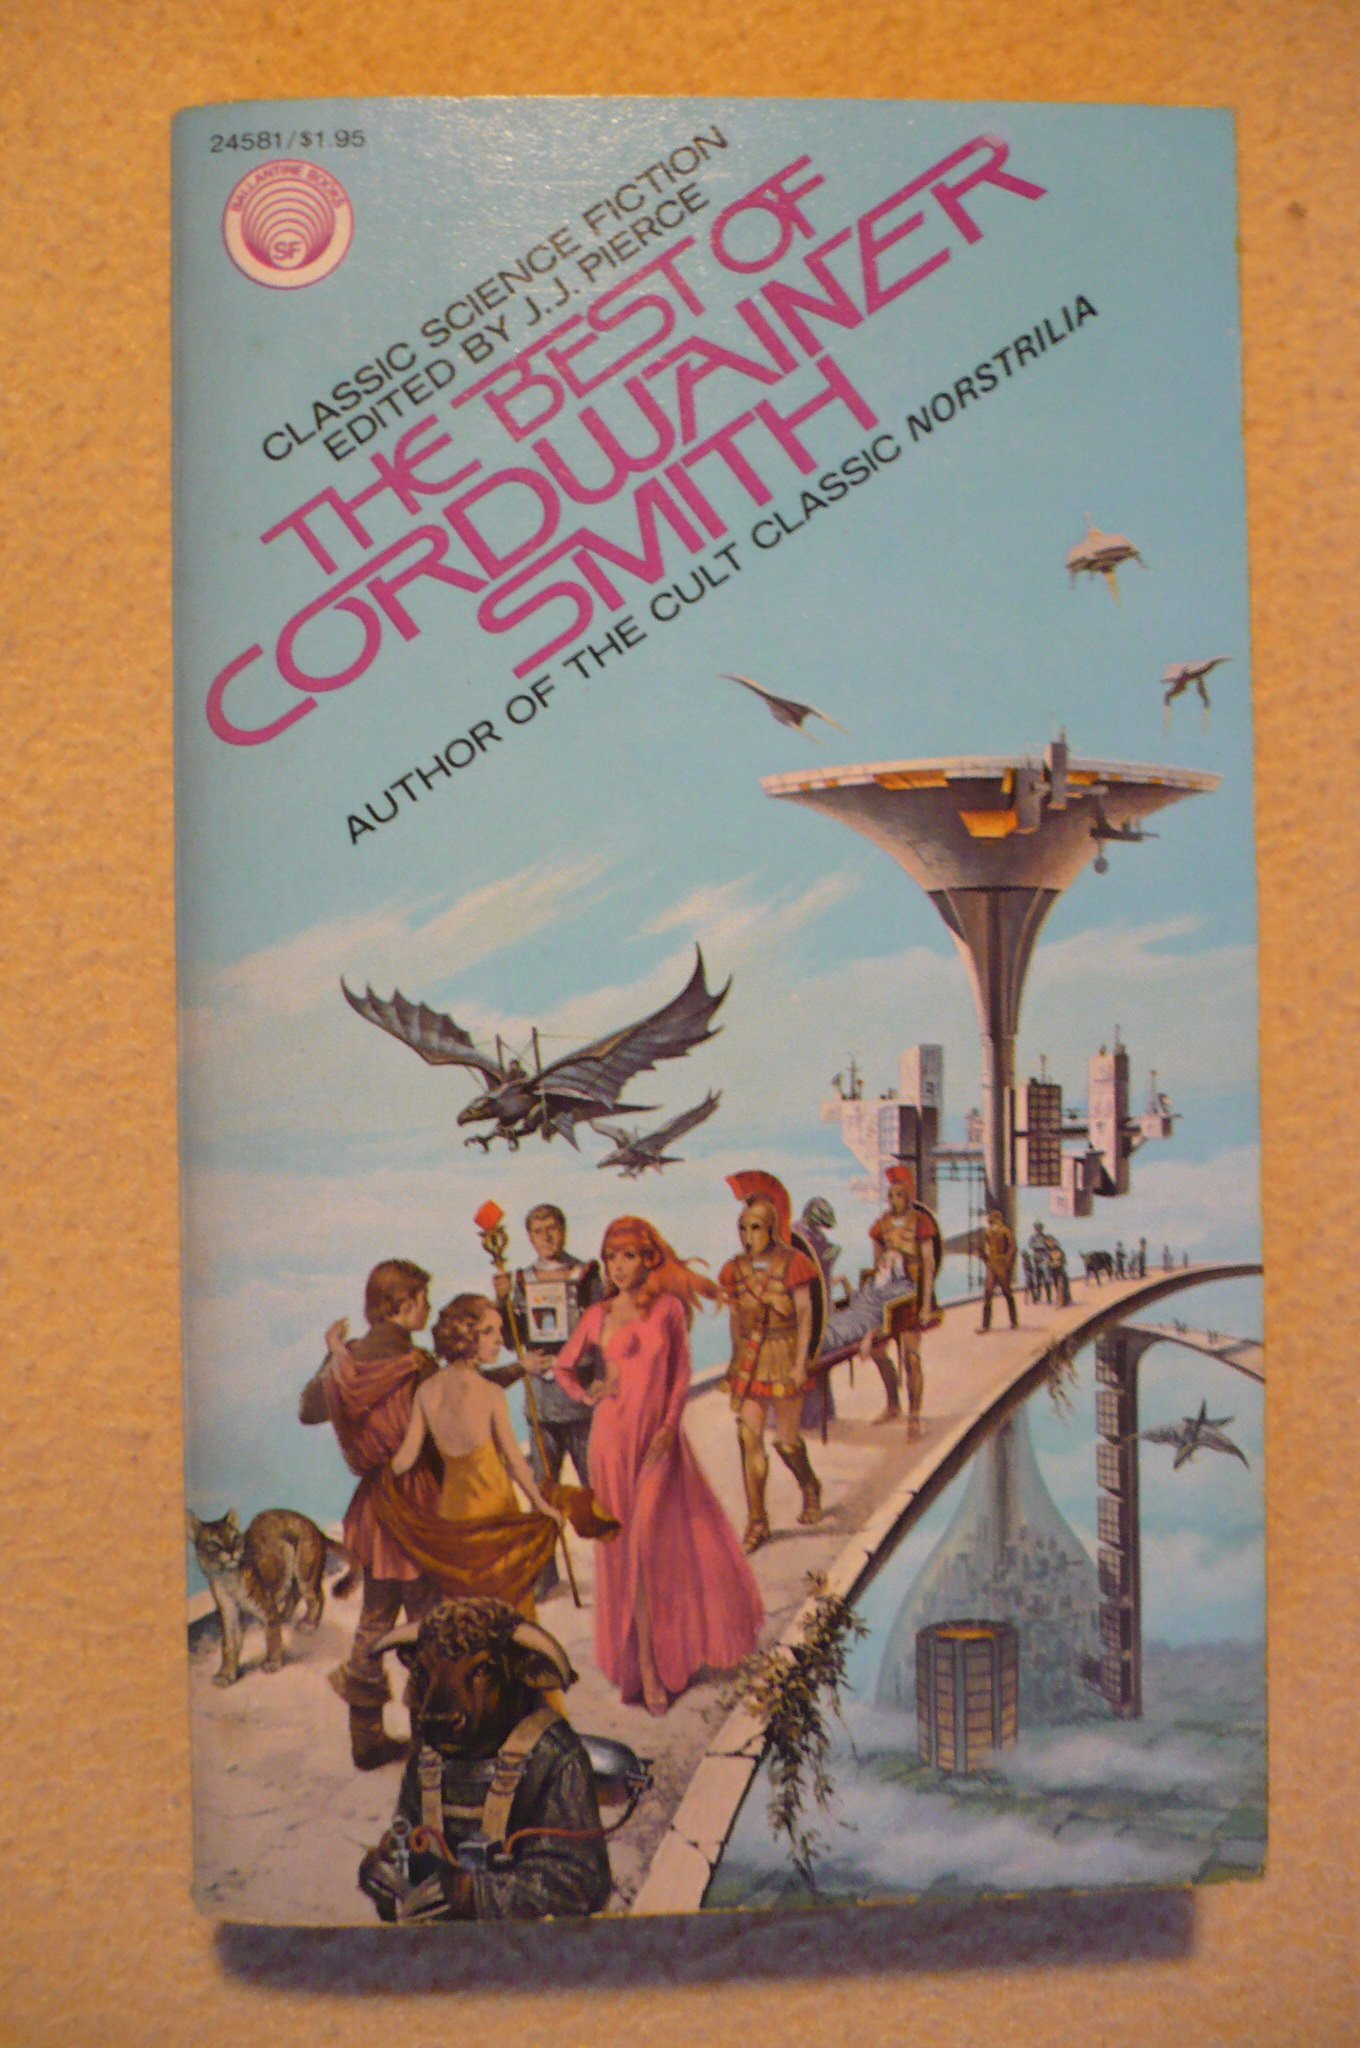 The Best of Cordwainer Smith, Cordwainer Smith